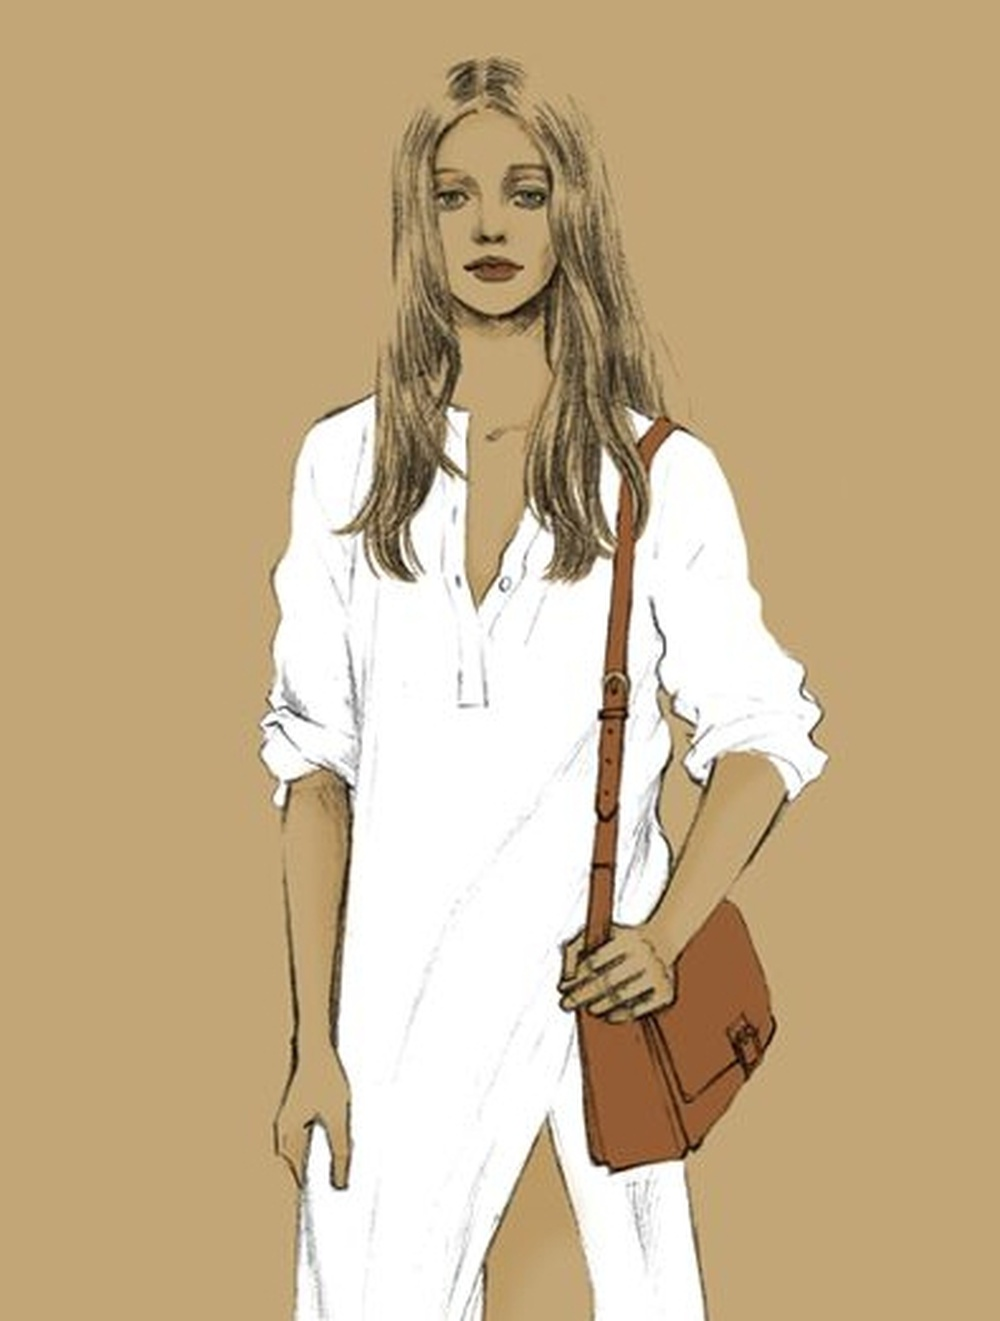 We should wear white so that we never forget the importance of cleanliness.